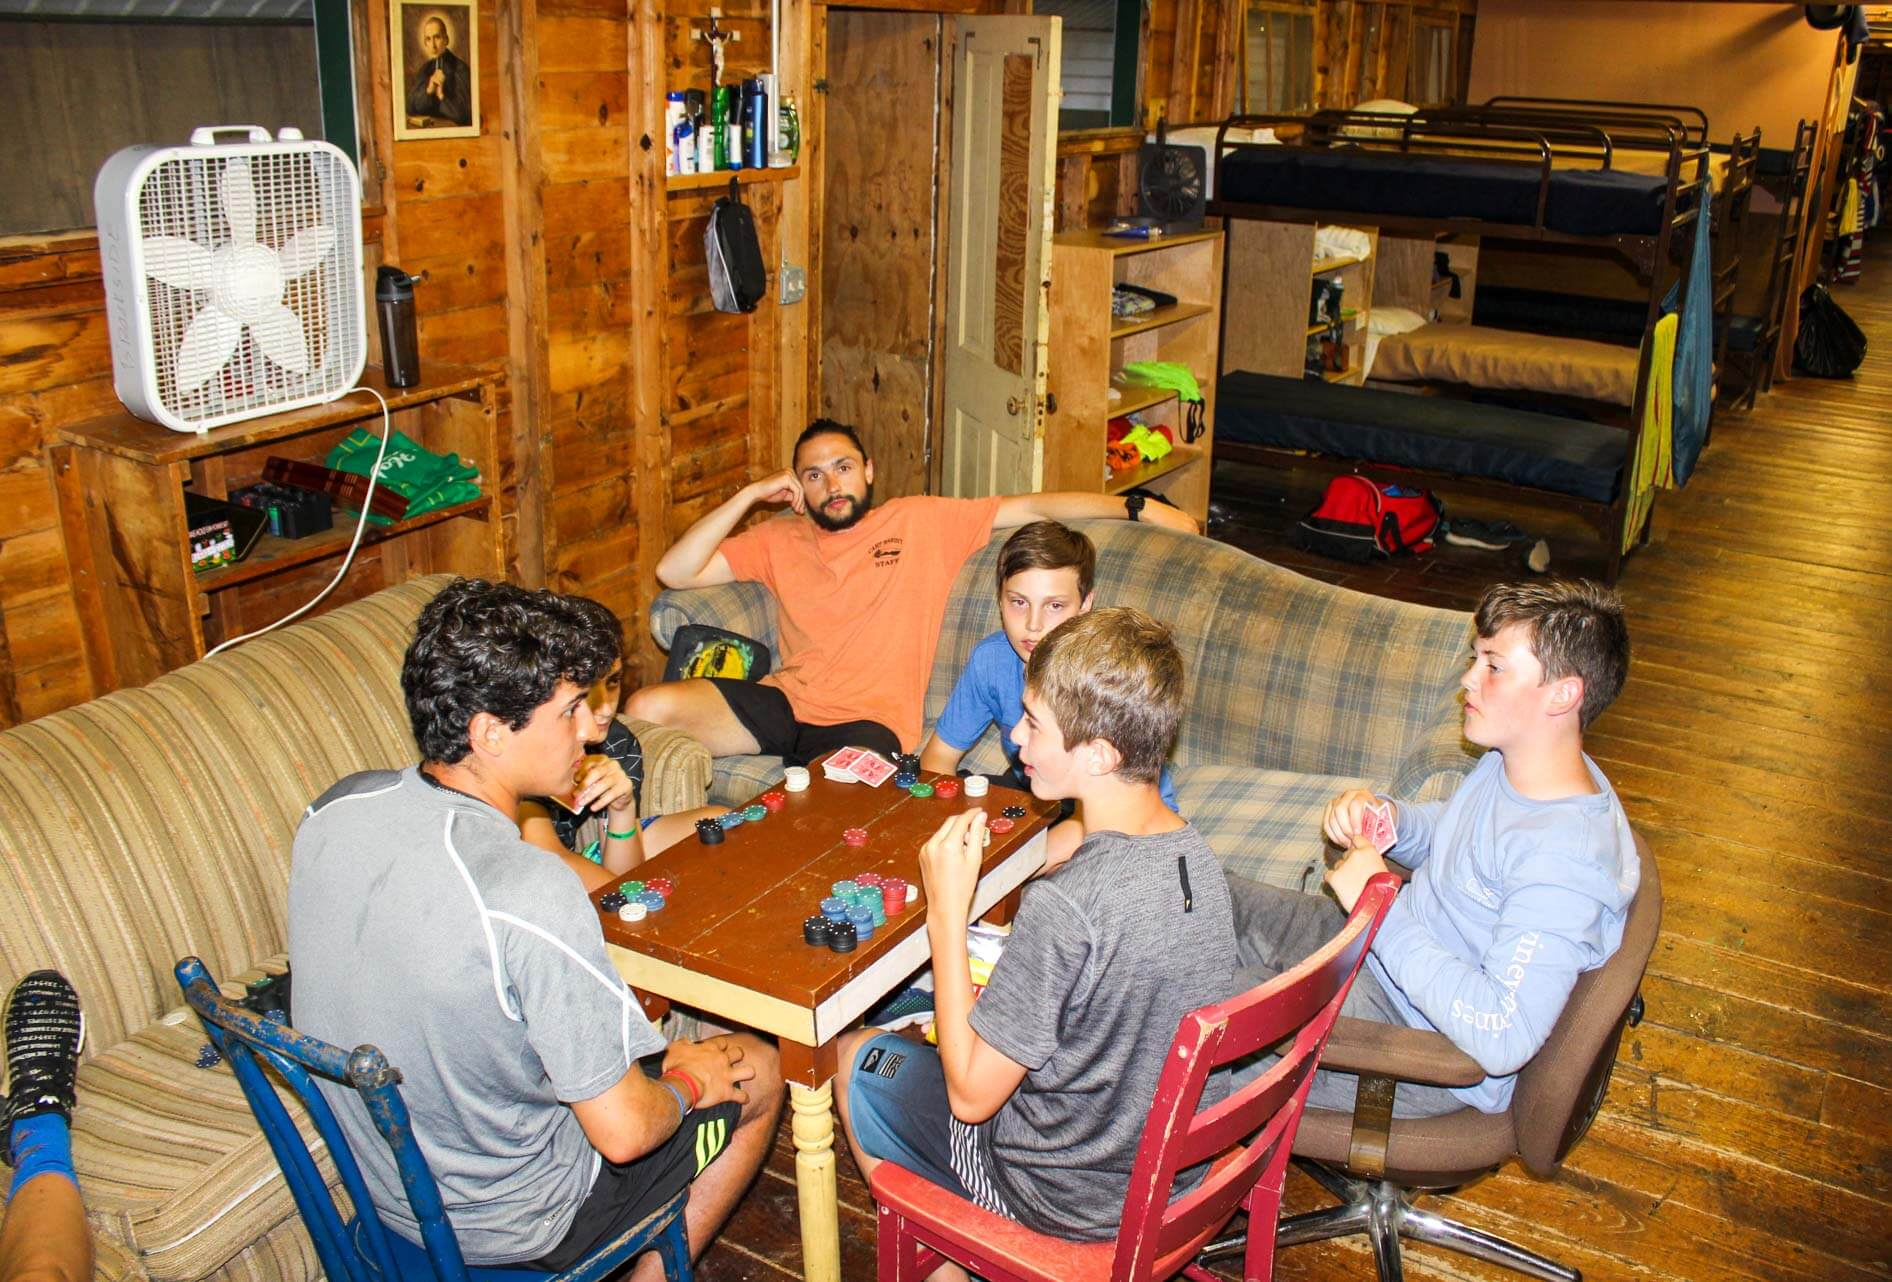 Boys lounge in camp cabin